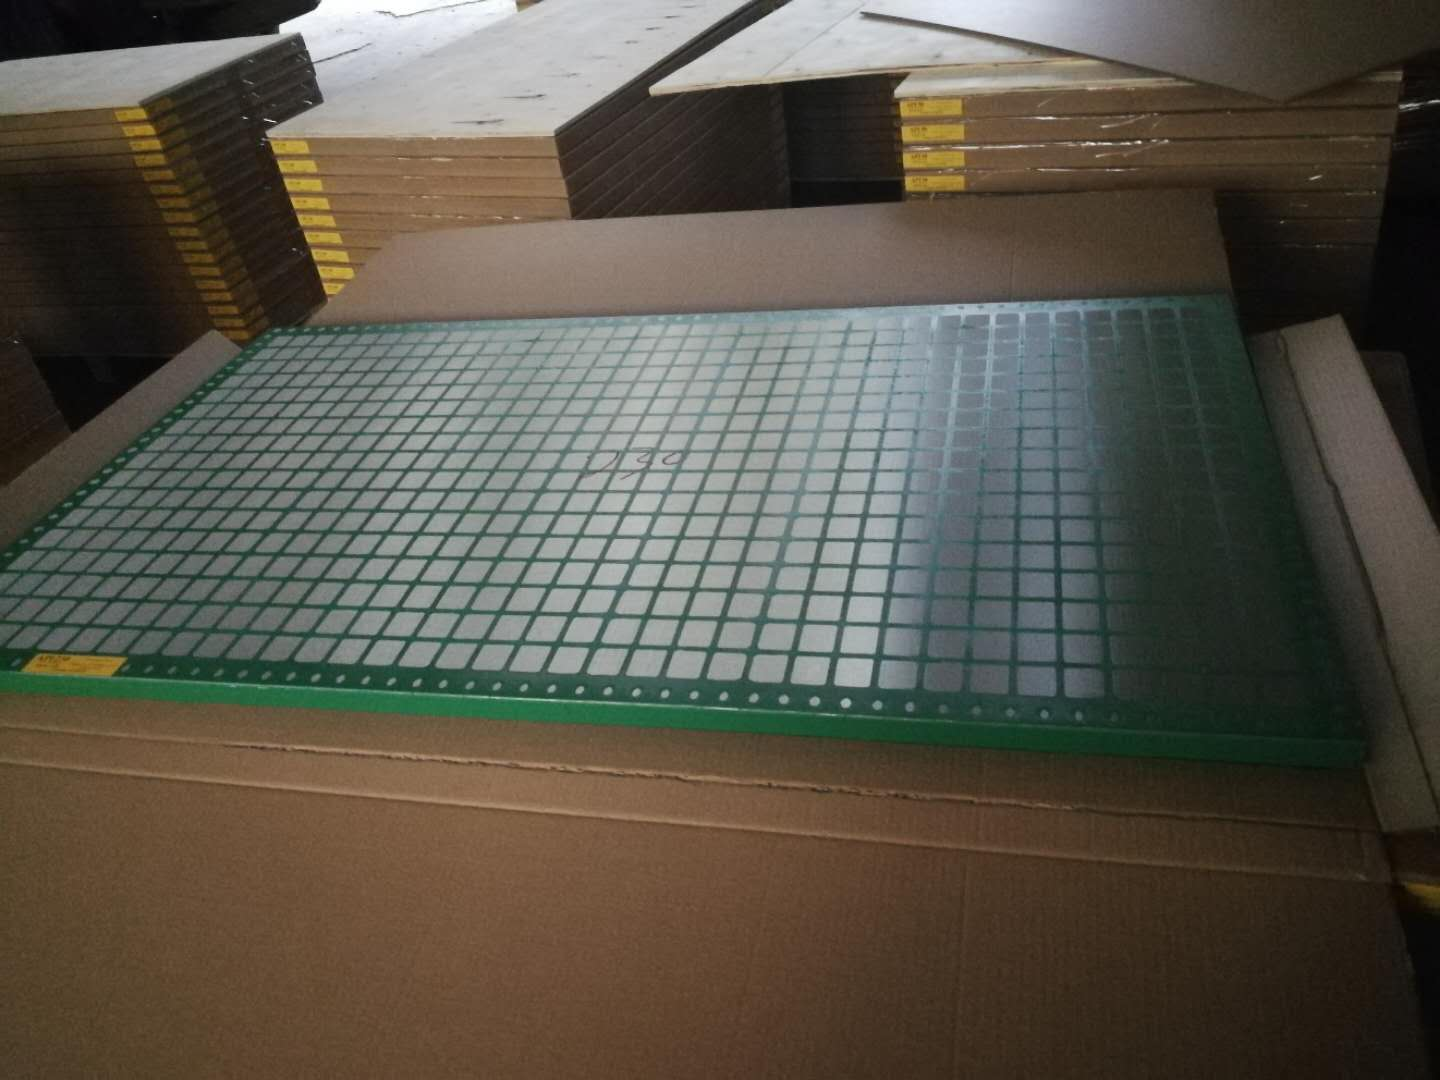 Over 500 panels shaker screen delivery